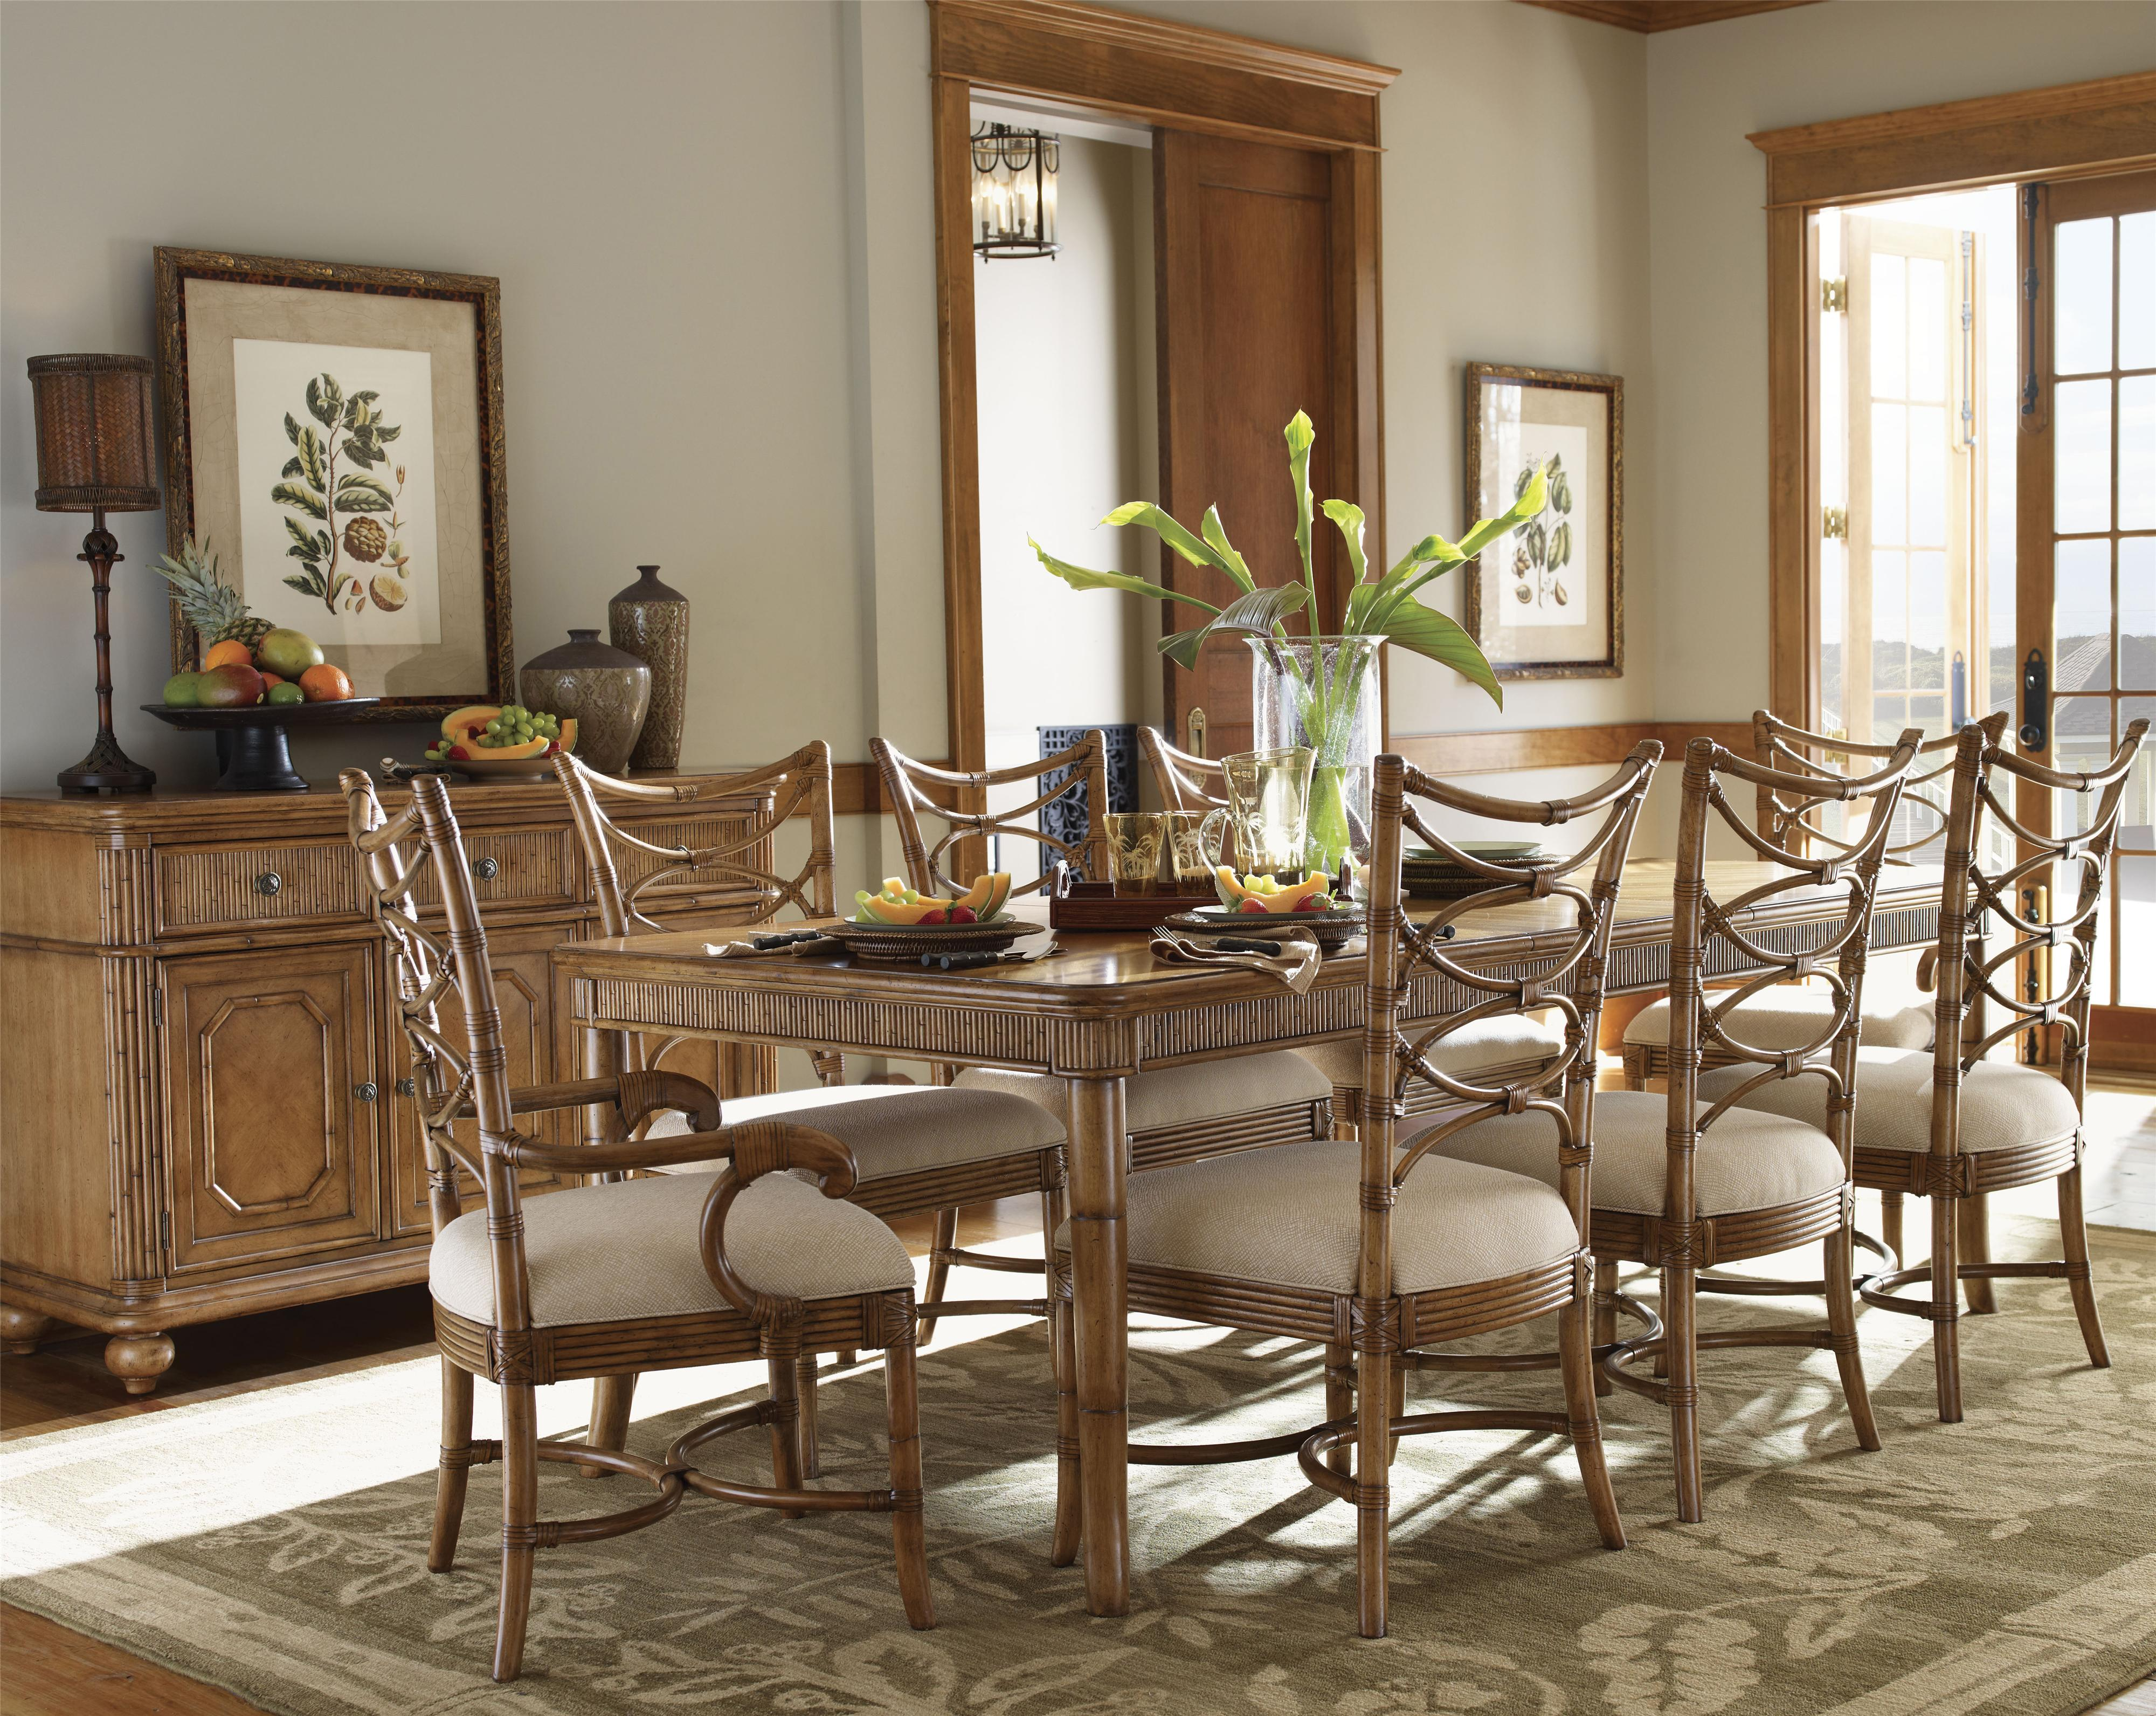 Tommy Bahama Furniture Collections. Beach House Dining Room Sets